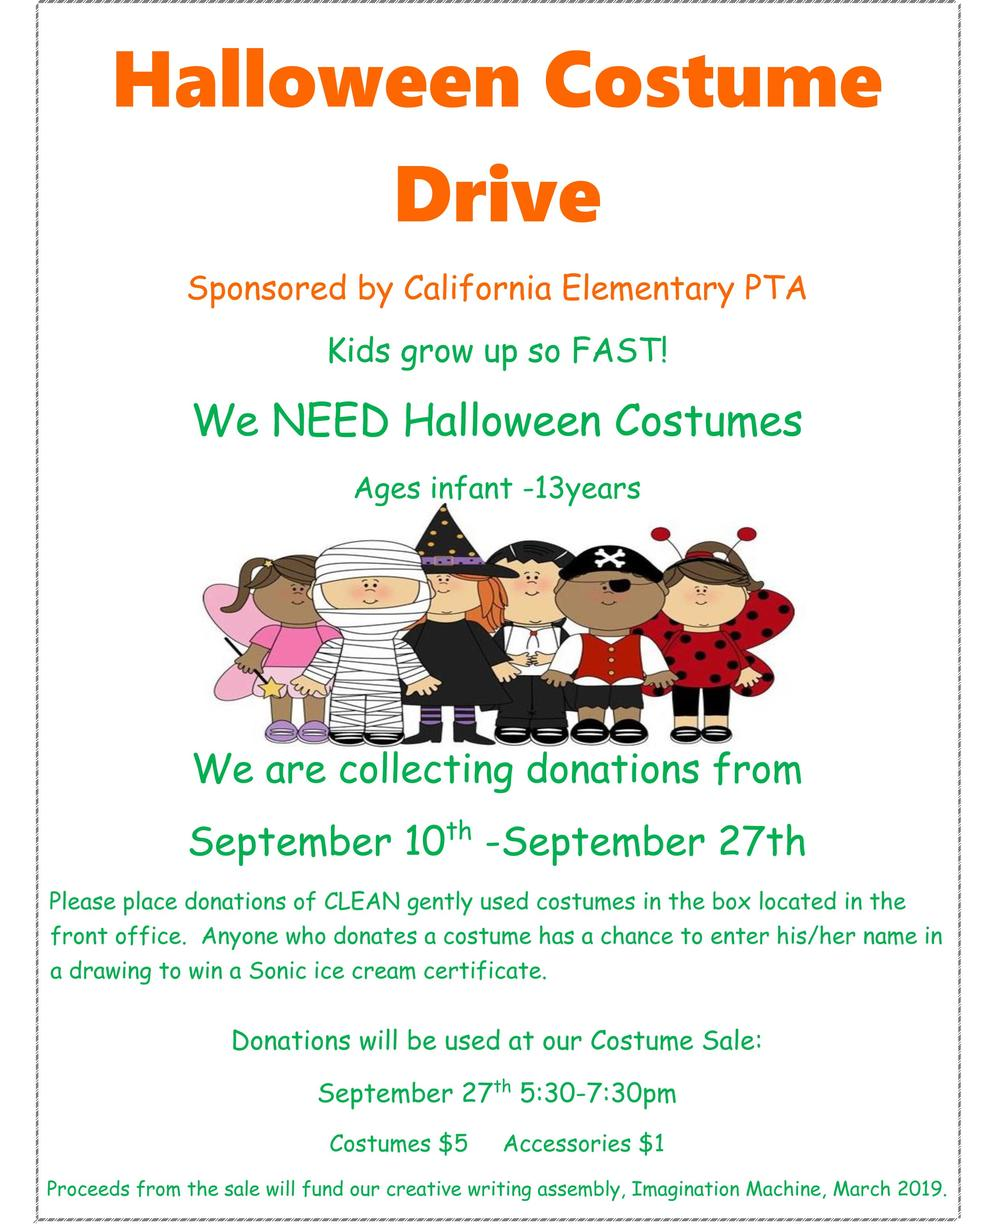 Costume Drive flyer